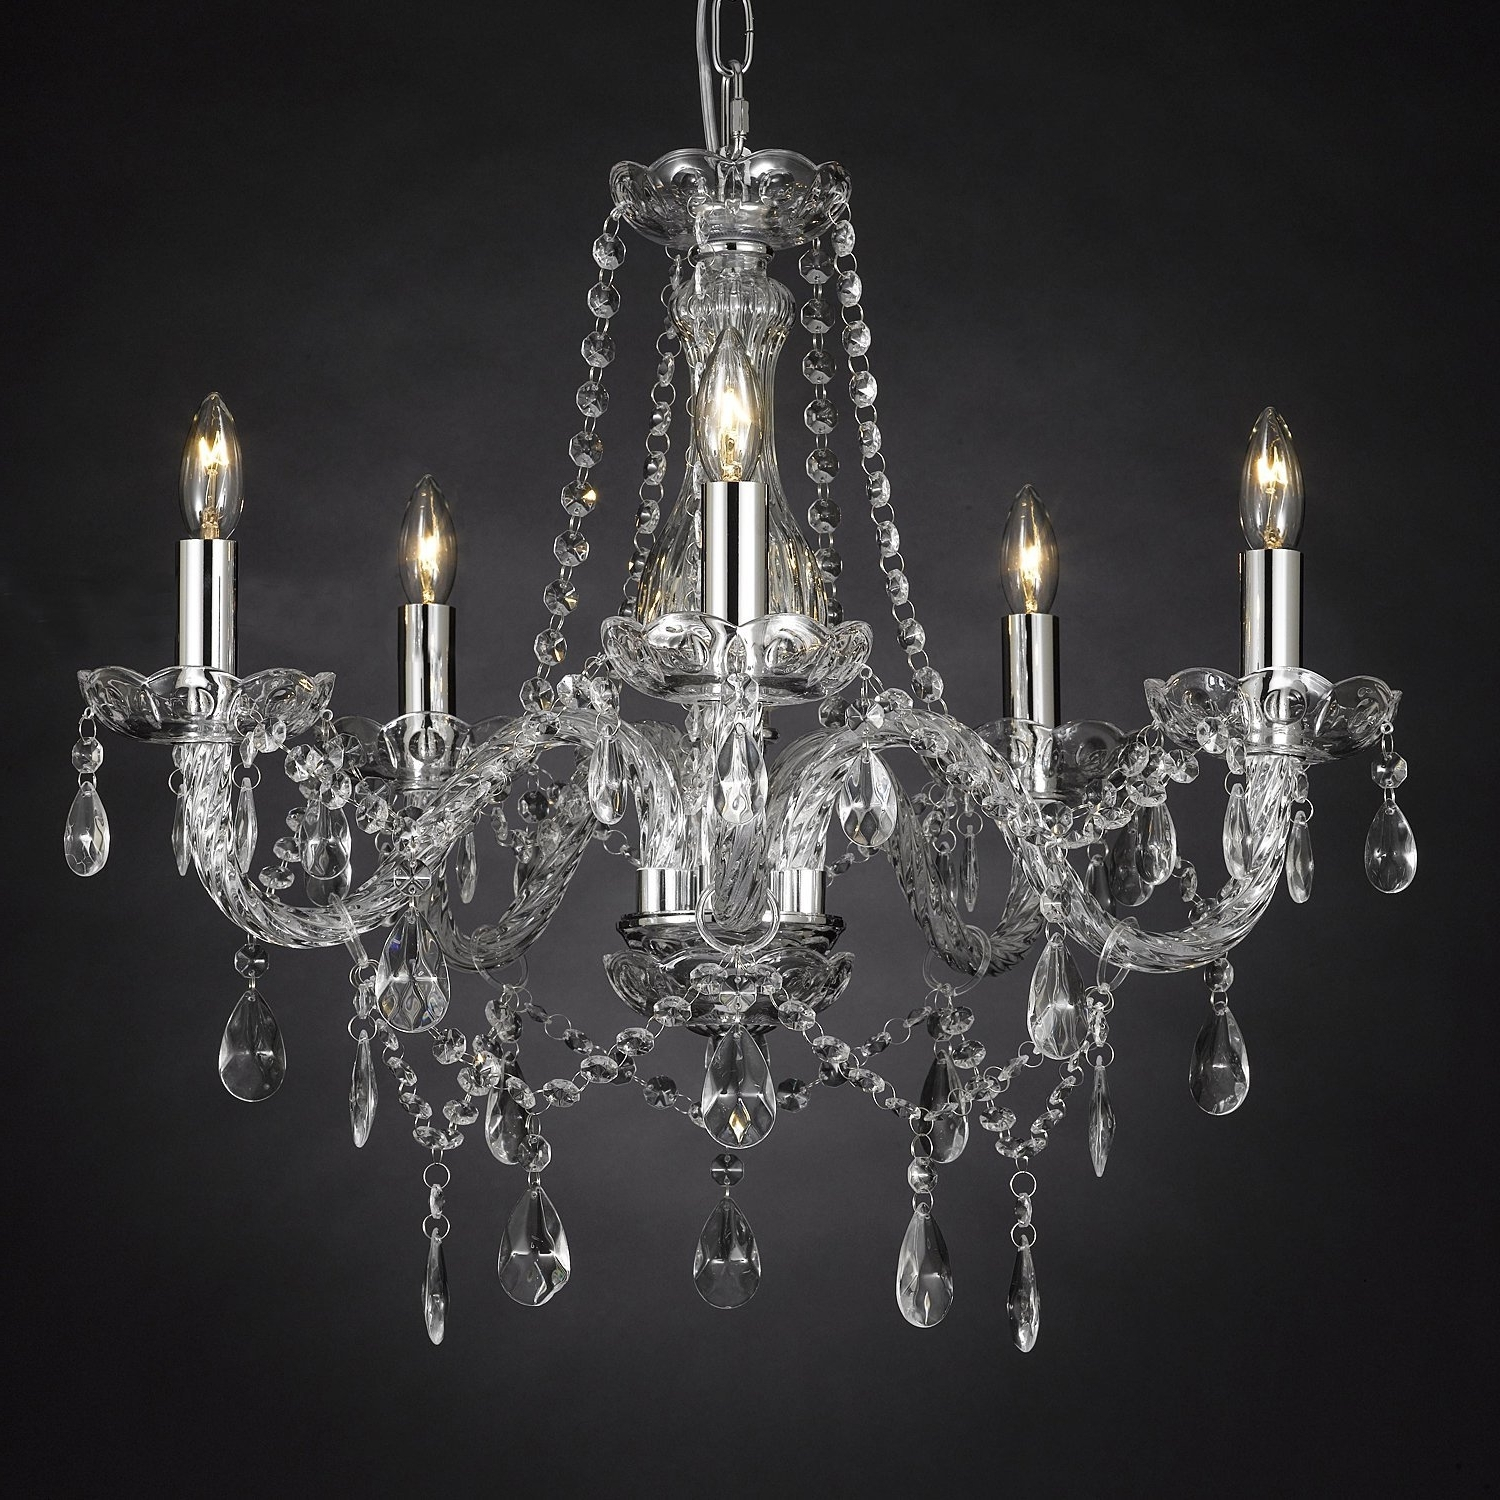 Chandelier Lights With Regard To Well Liked Lighting: Flameless Candle Chandelier (View 20 of 20)